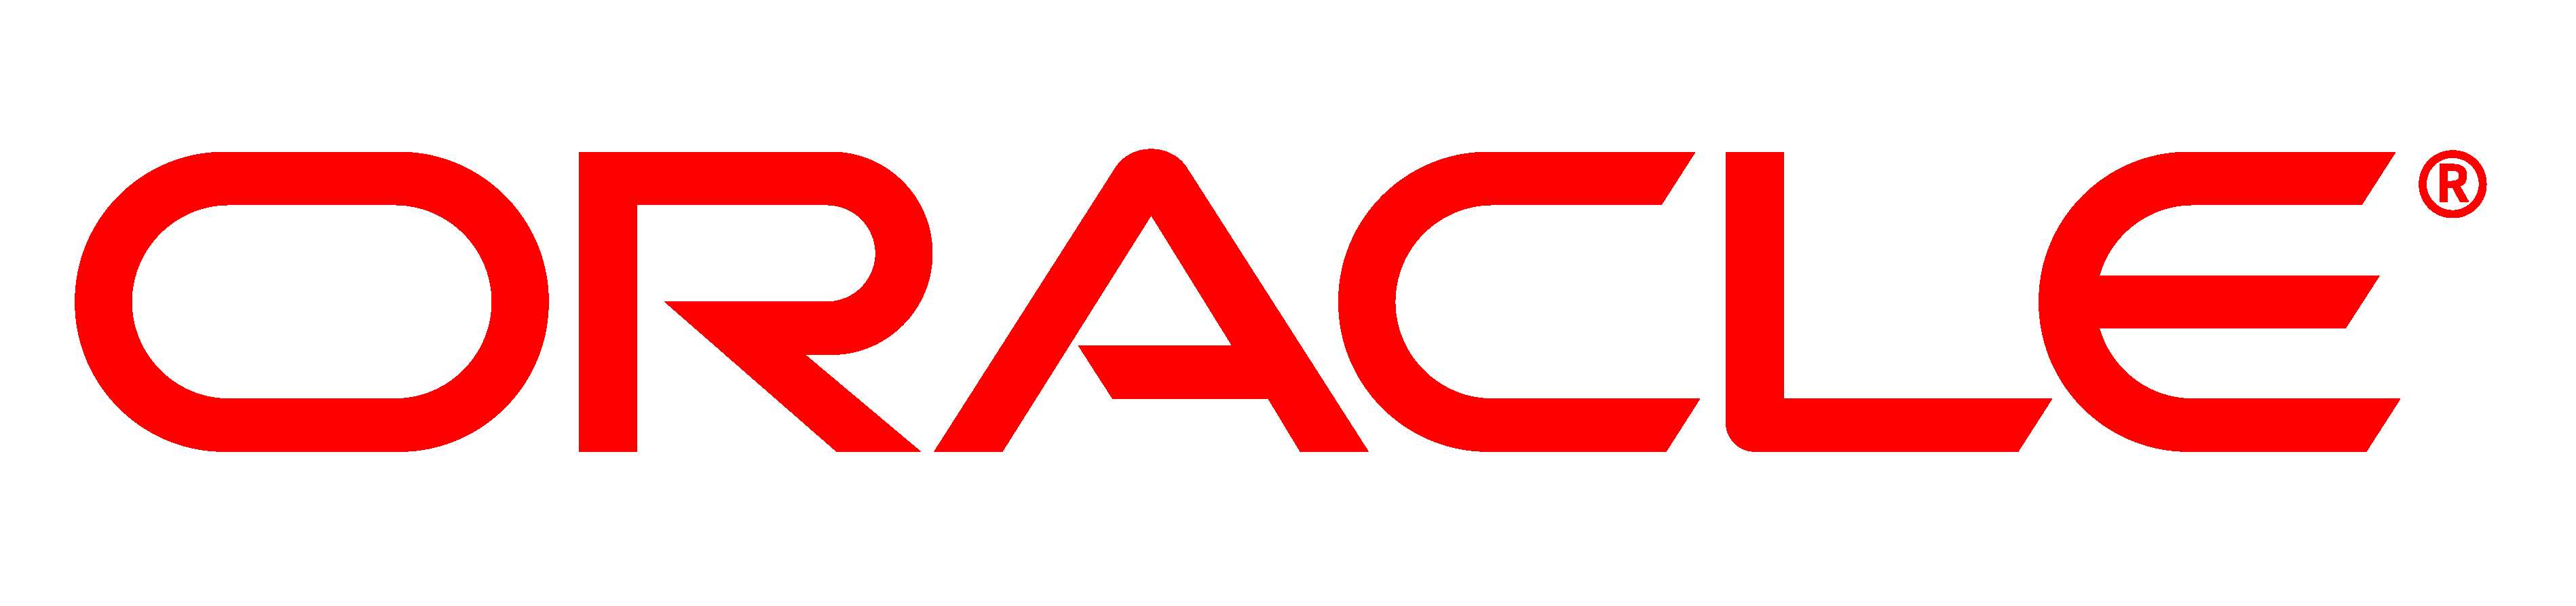 Oracle-PNG-High-Quality-Image